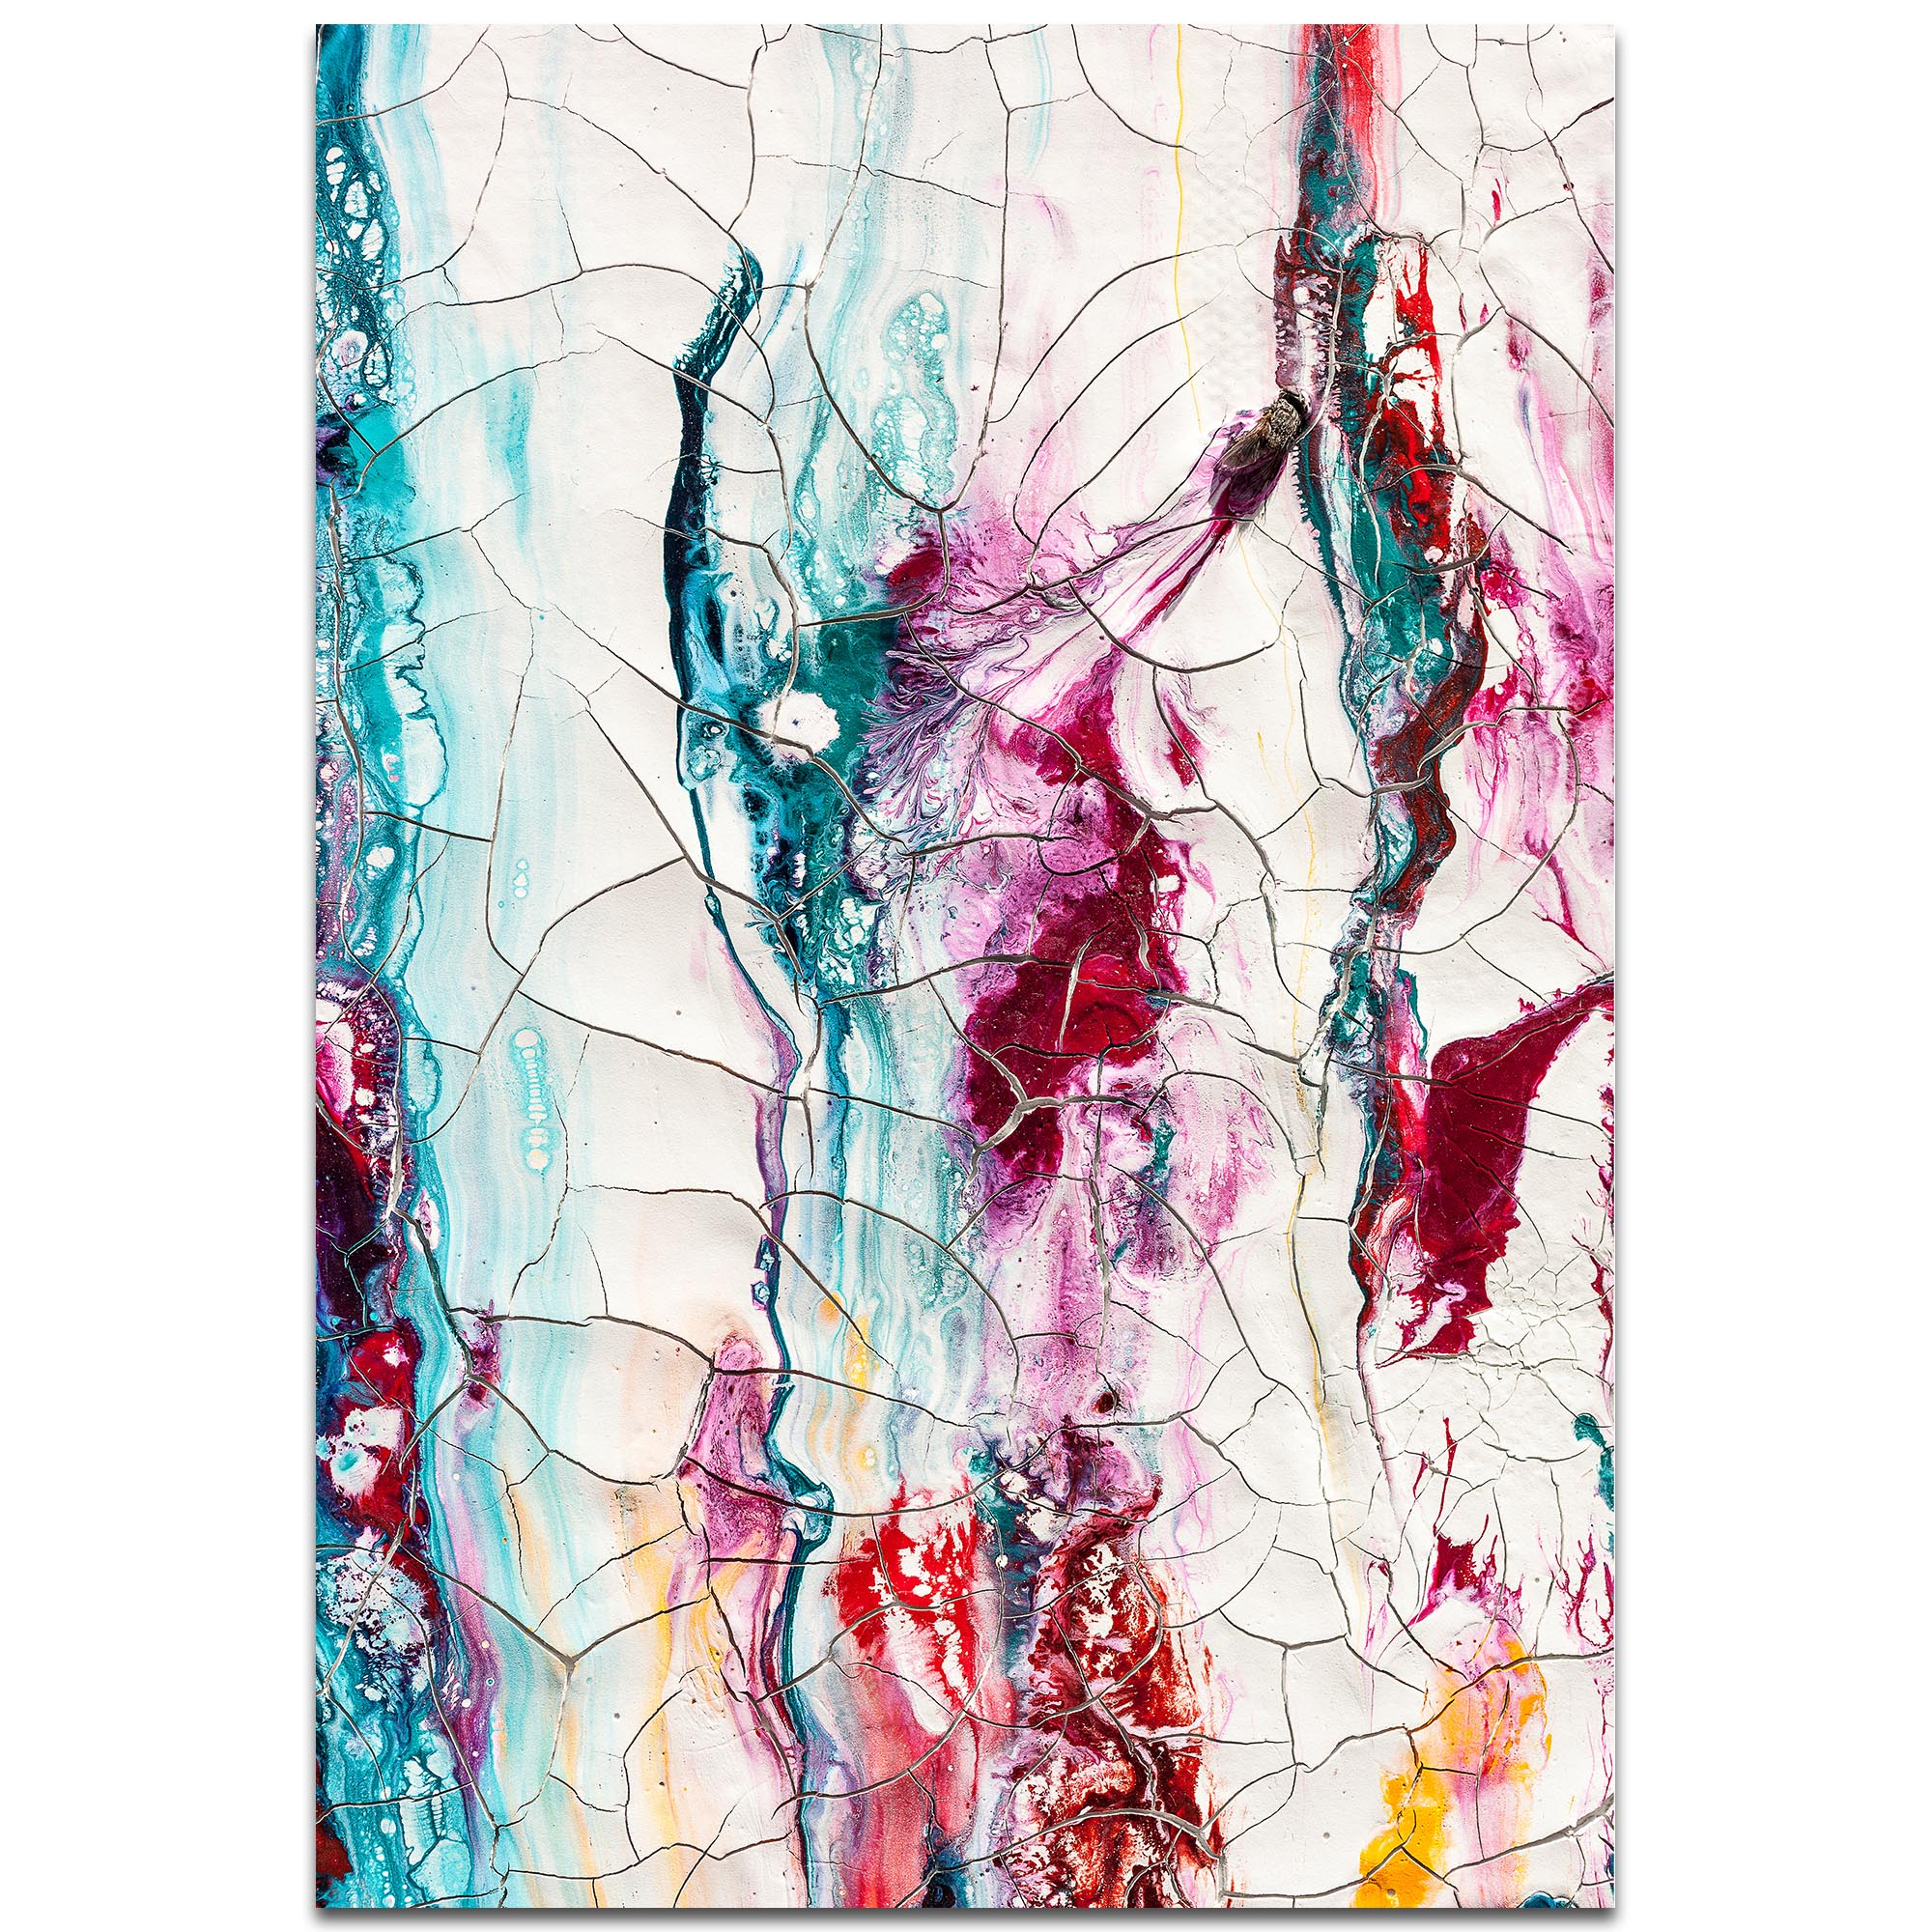 Abstract Wall Art 'Collateral Damage 3' - Colorful Urban Decor on Metal or Plexiglass